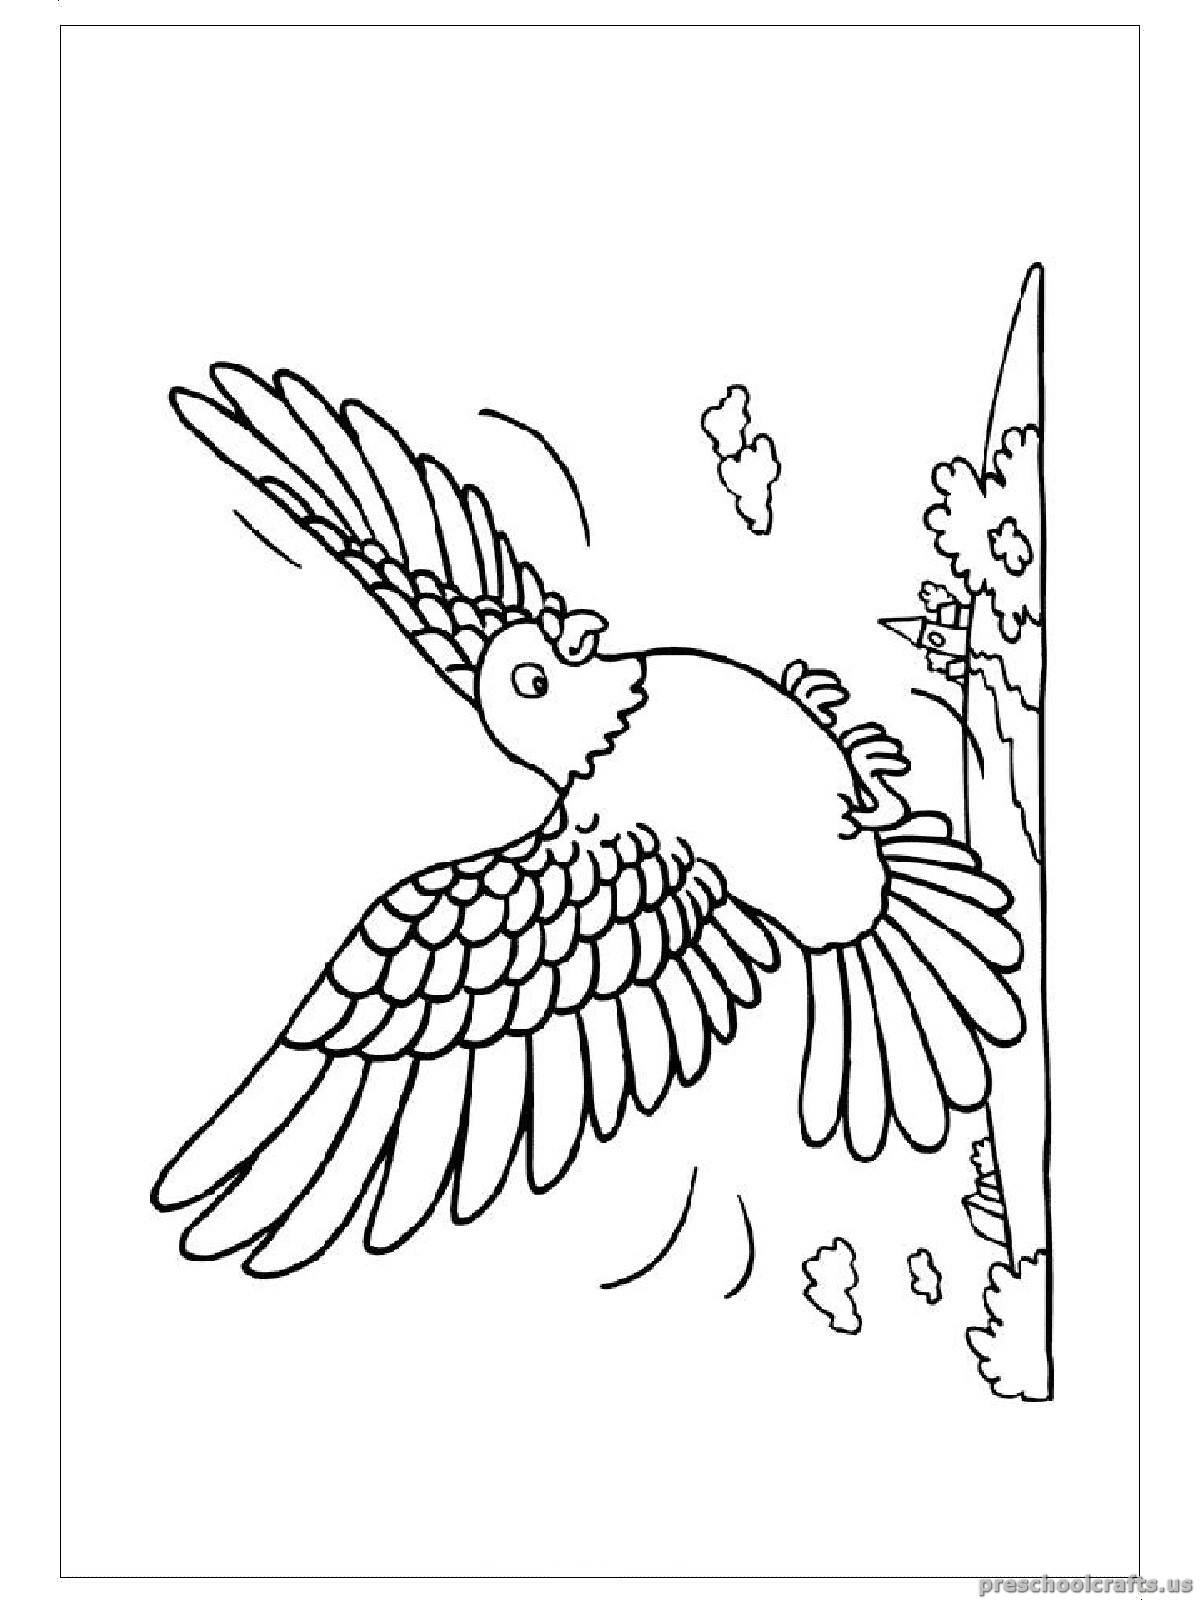 Swallow Coloring Pages For Kindergarten